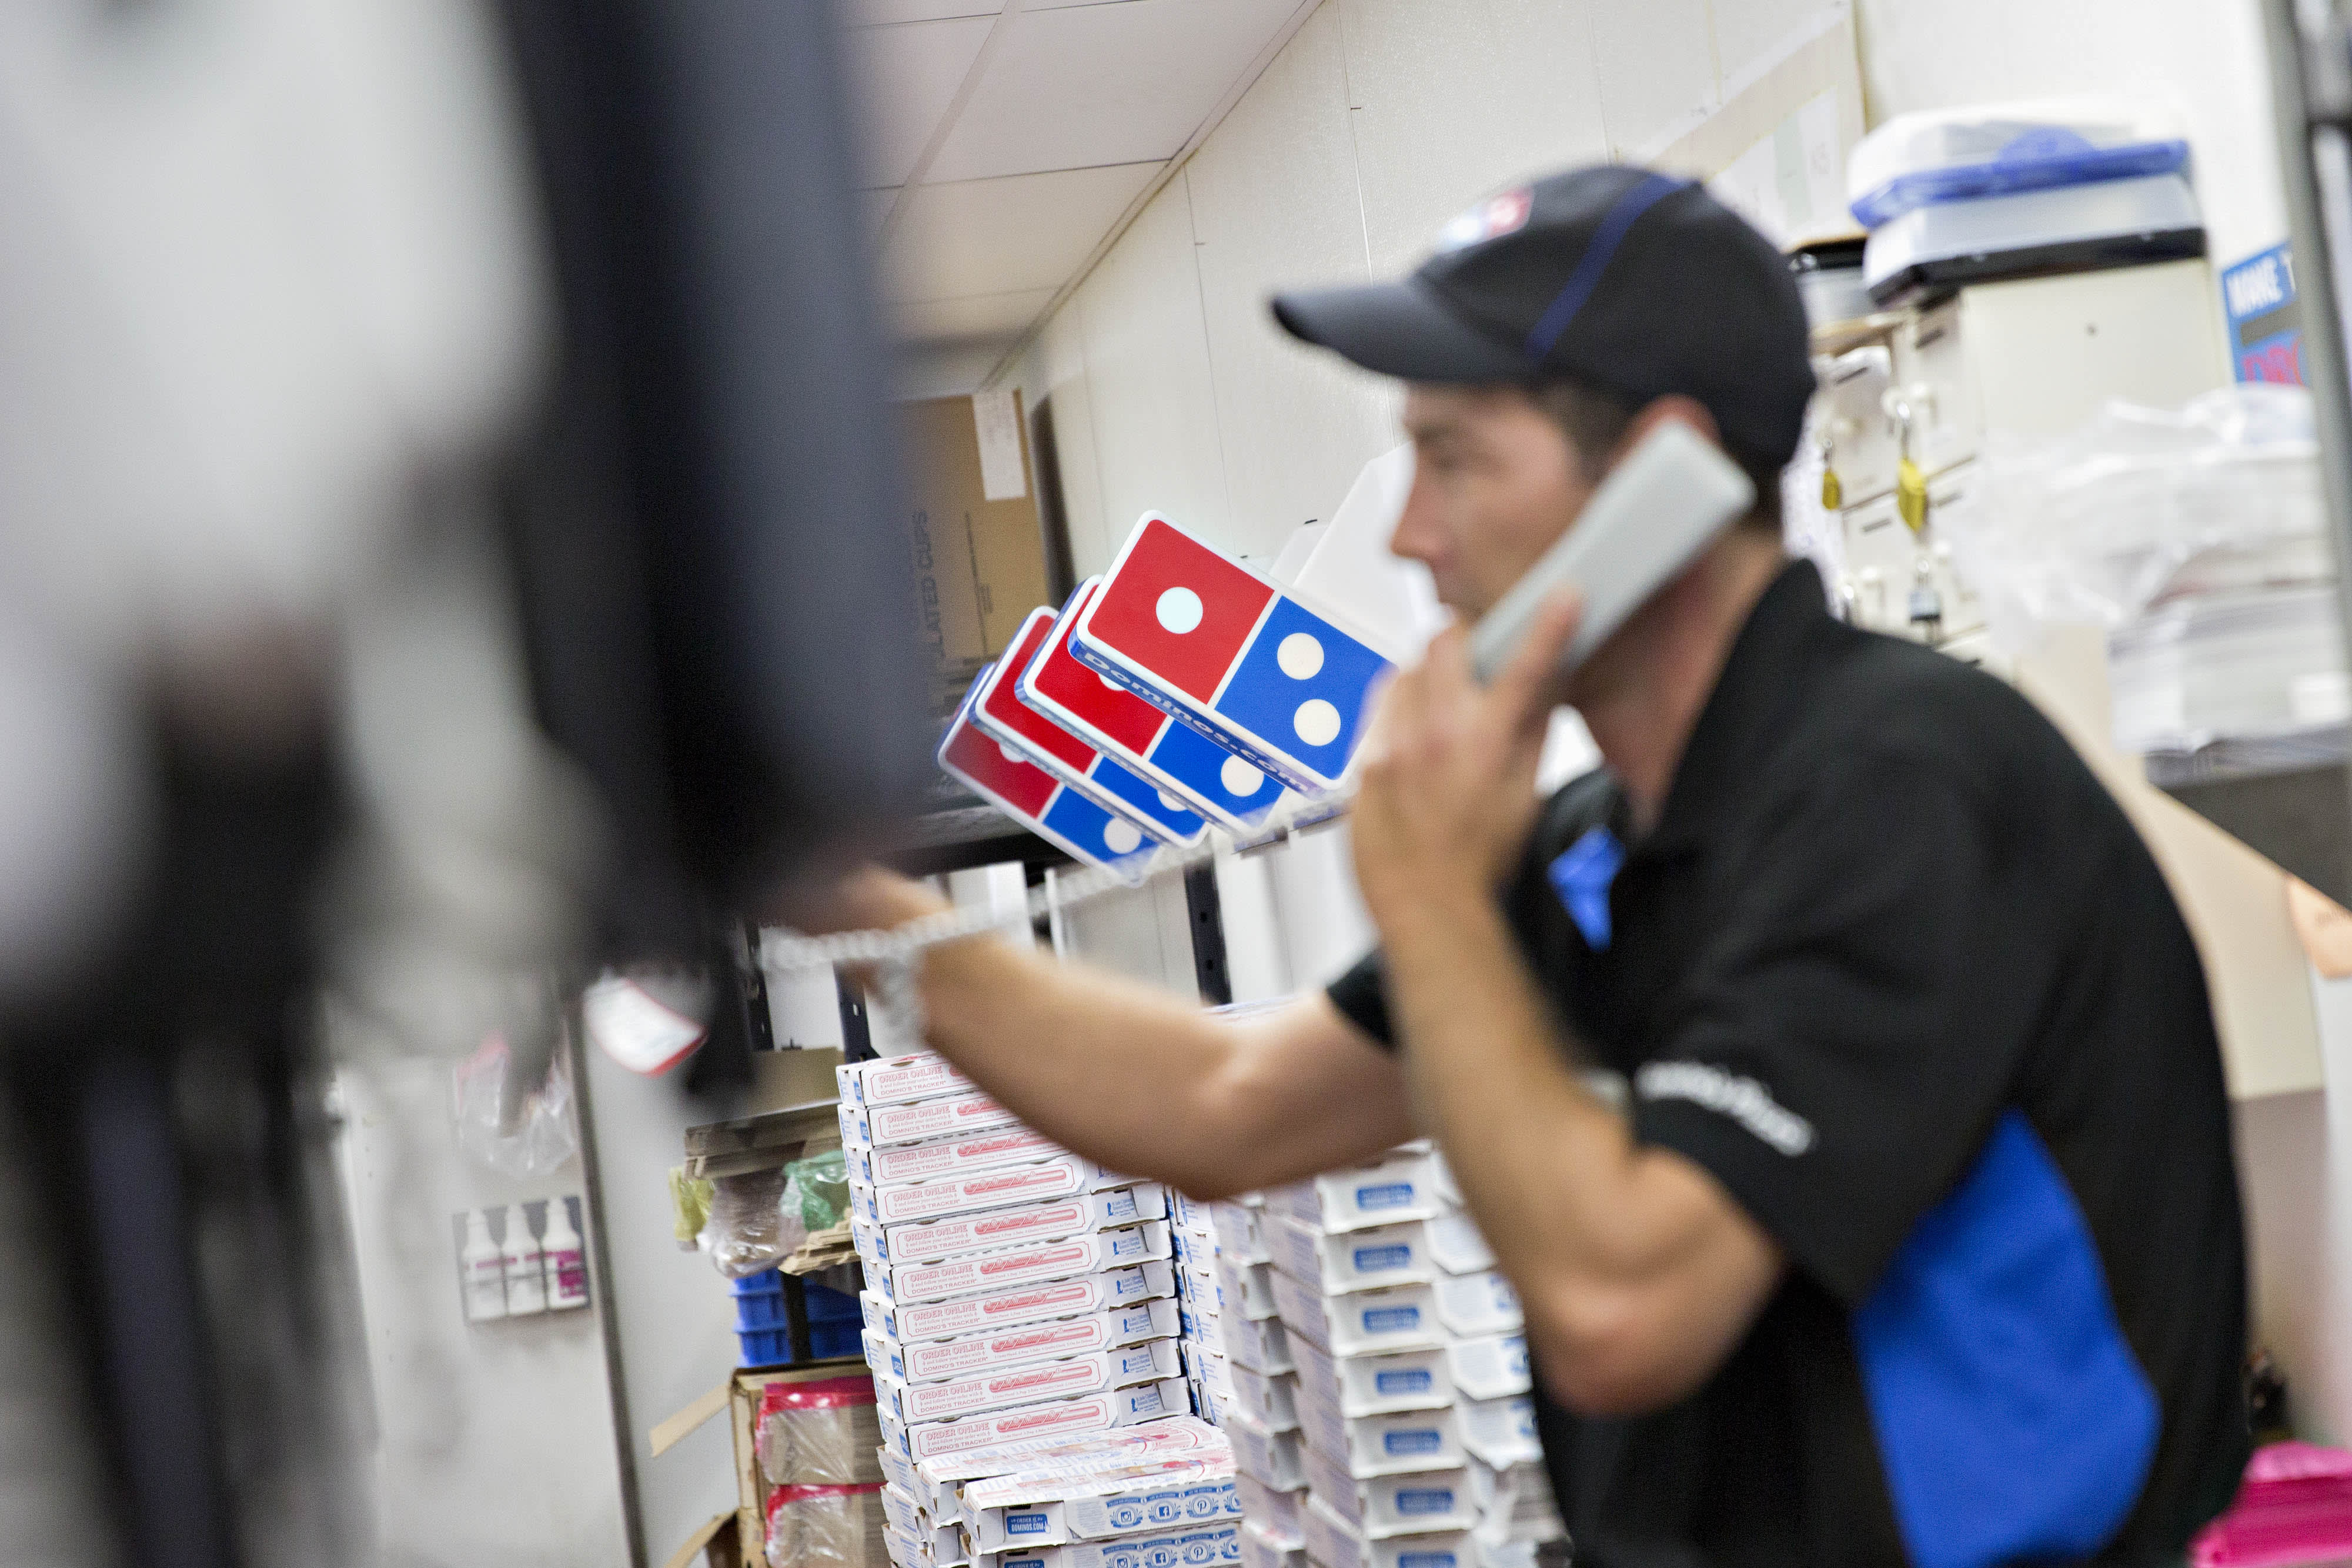 A blind man couldn't order pizza from Domino's. The company wants the Supreme Court to say websites don't have to be accessible